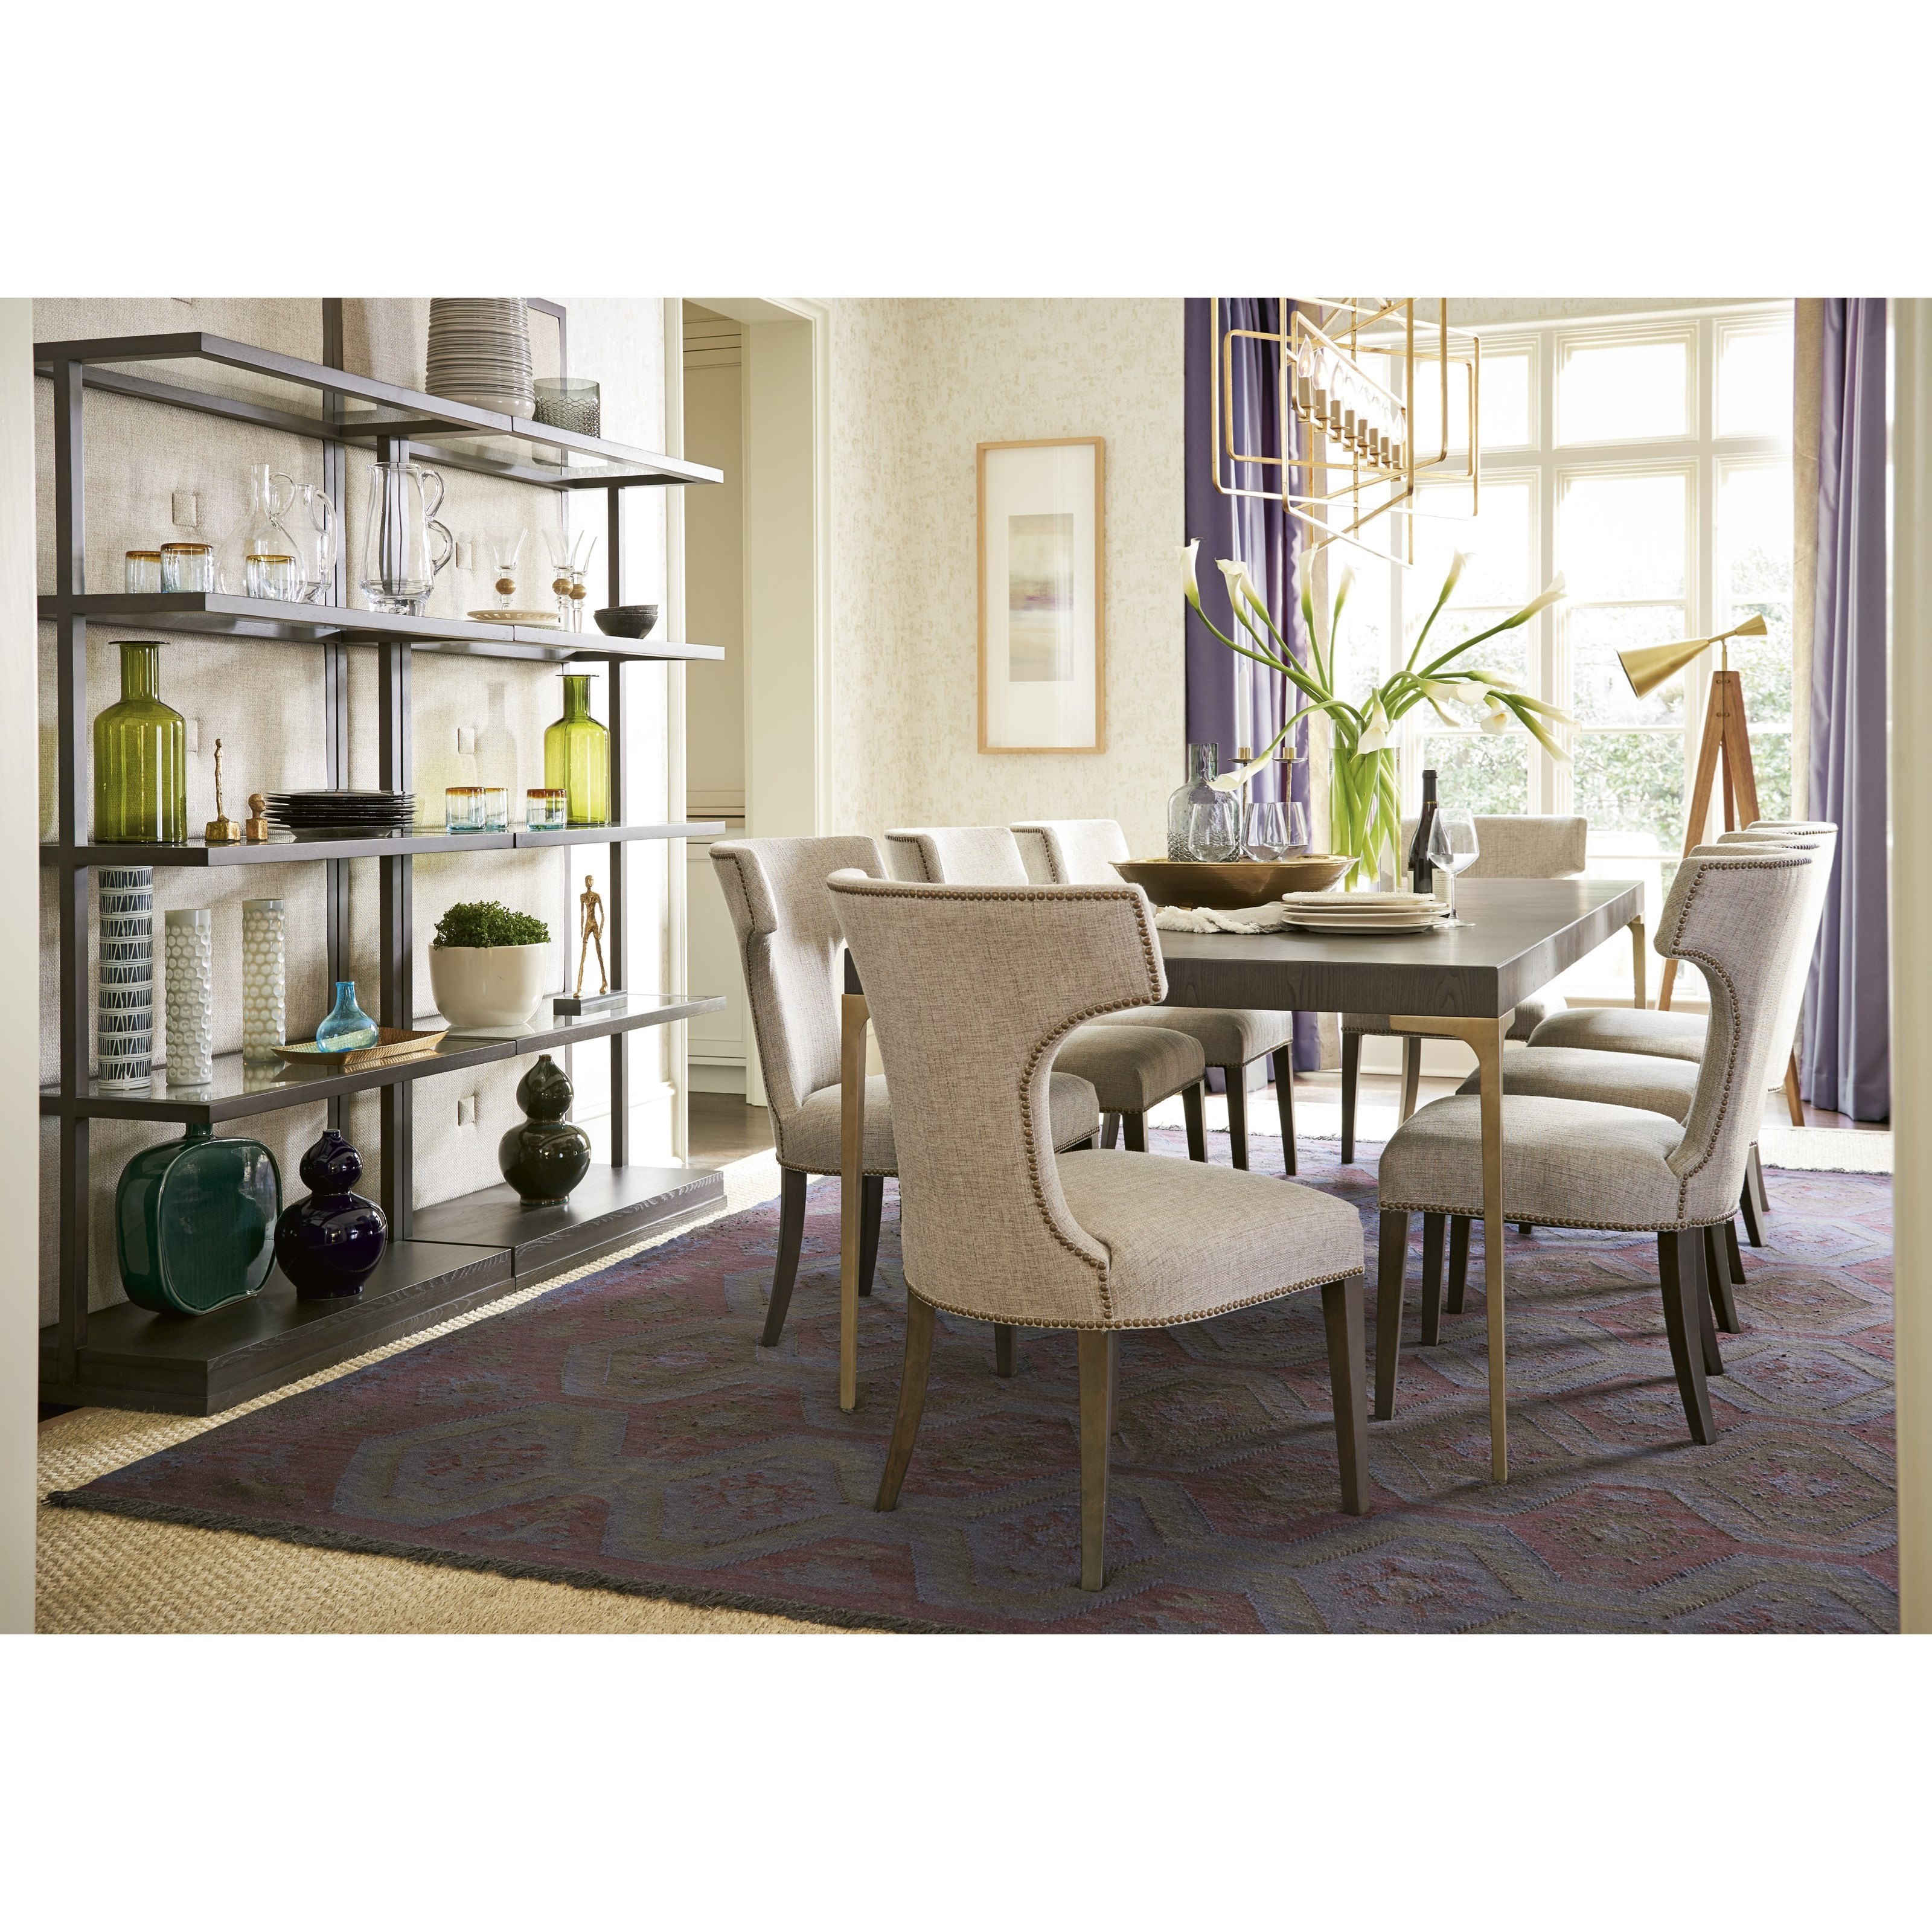 Soliloquy Formal Dining Room Group by Universal at Esprit Decor Home Furnishings